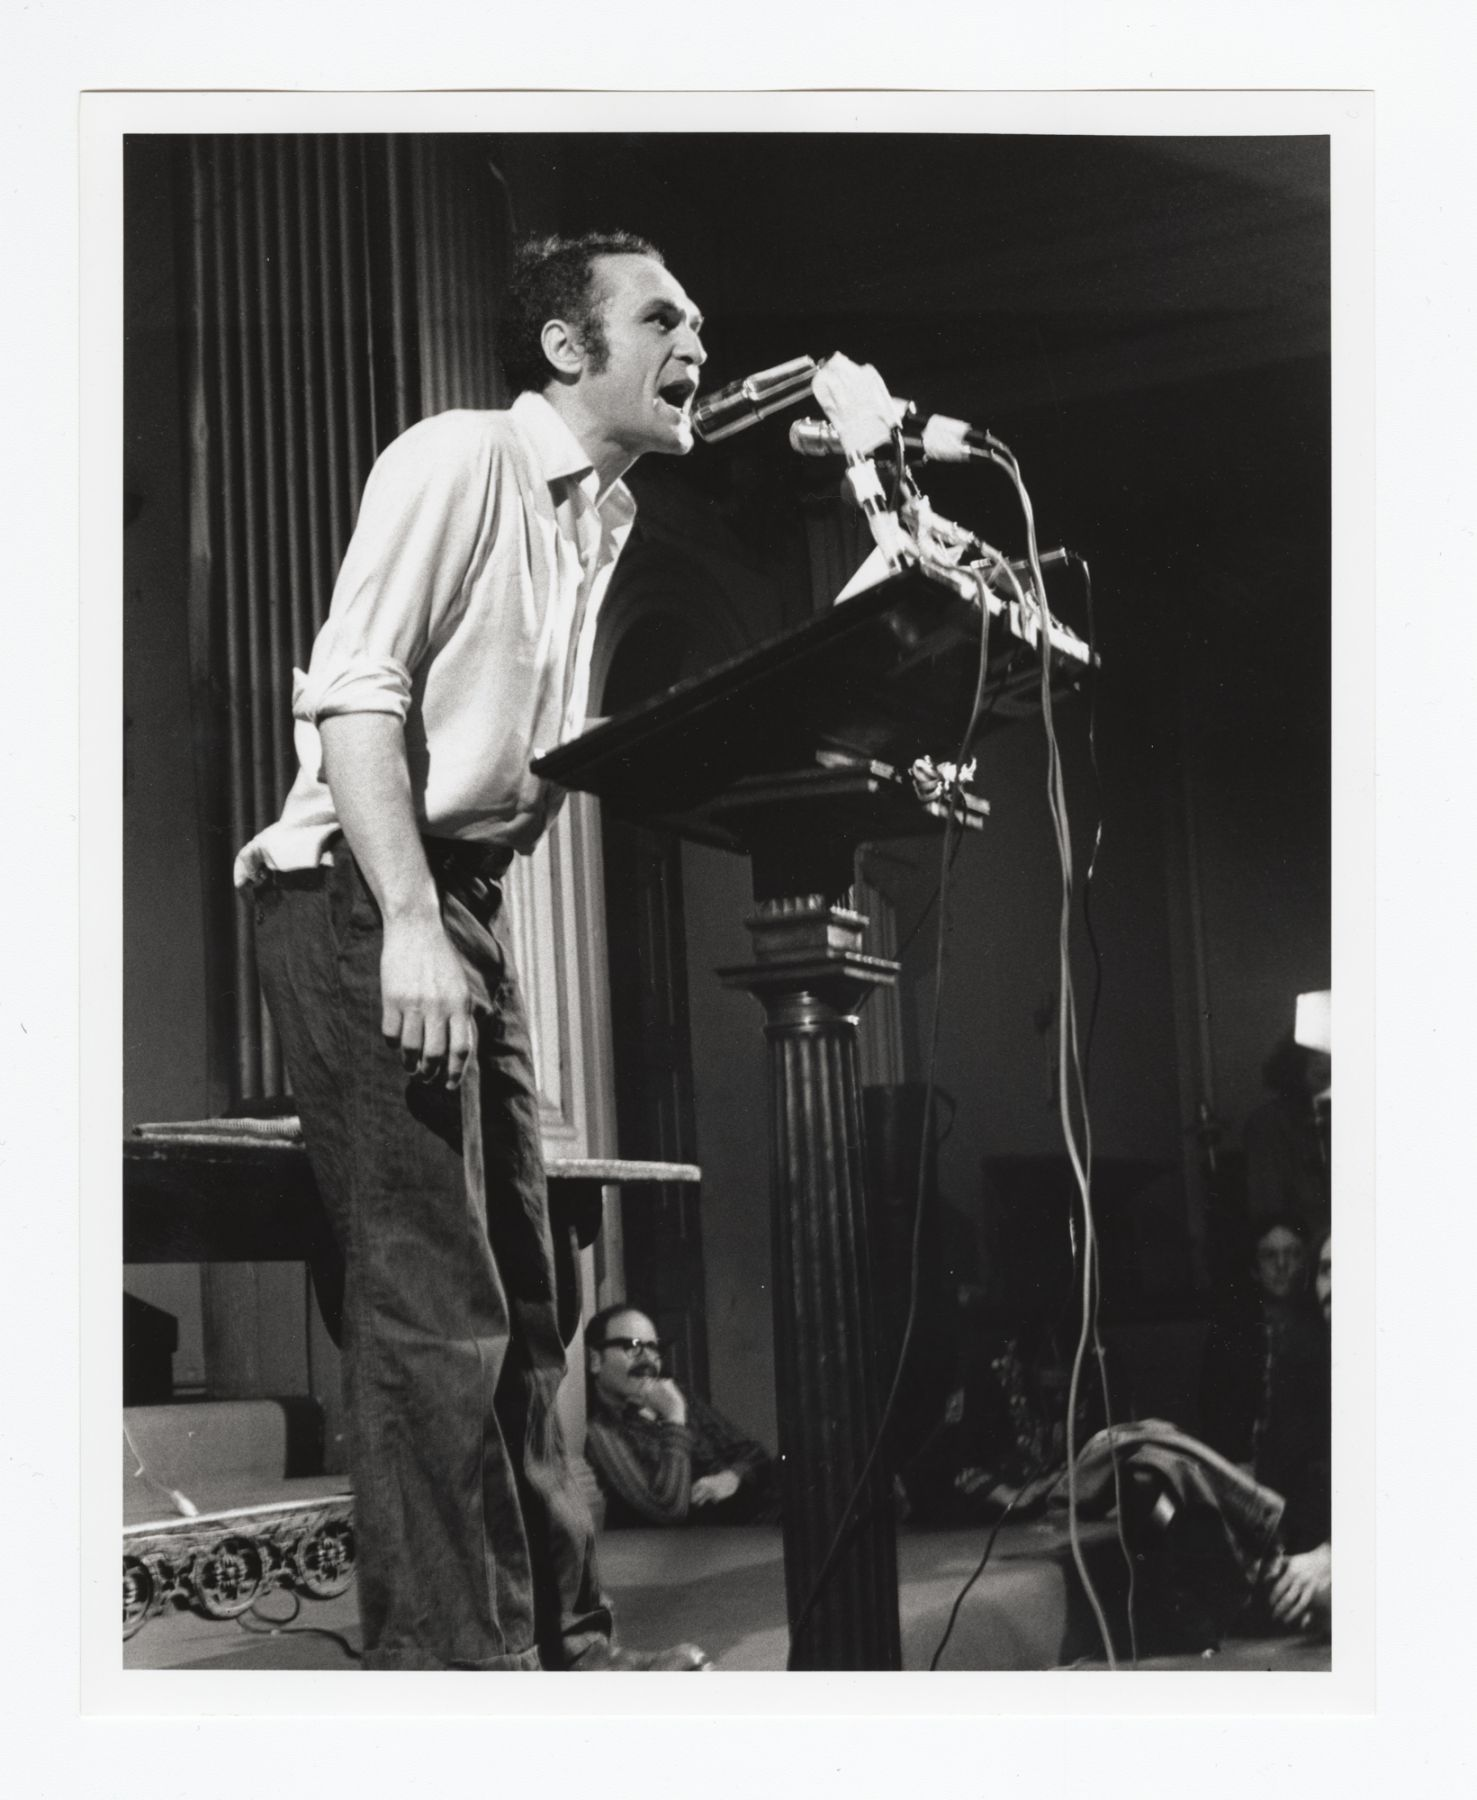 John Giorno performing at St. Mark's Church. New York, April 28 1974